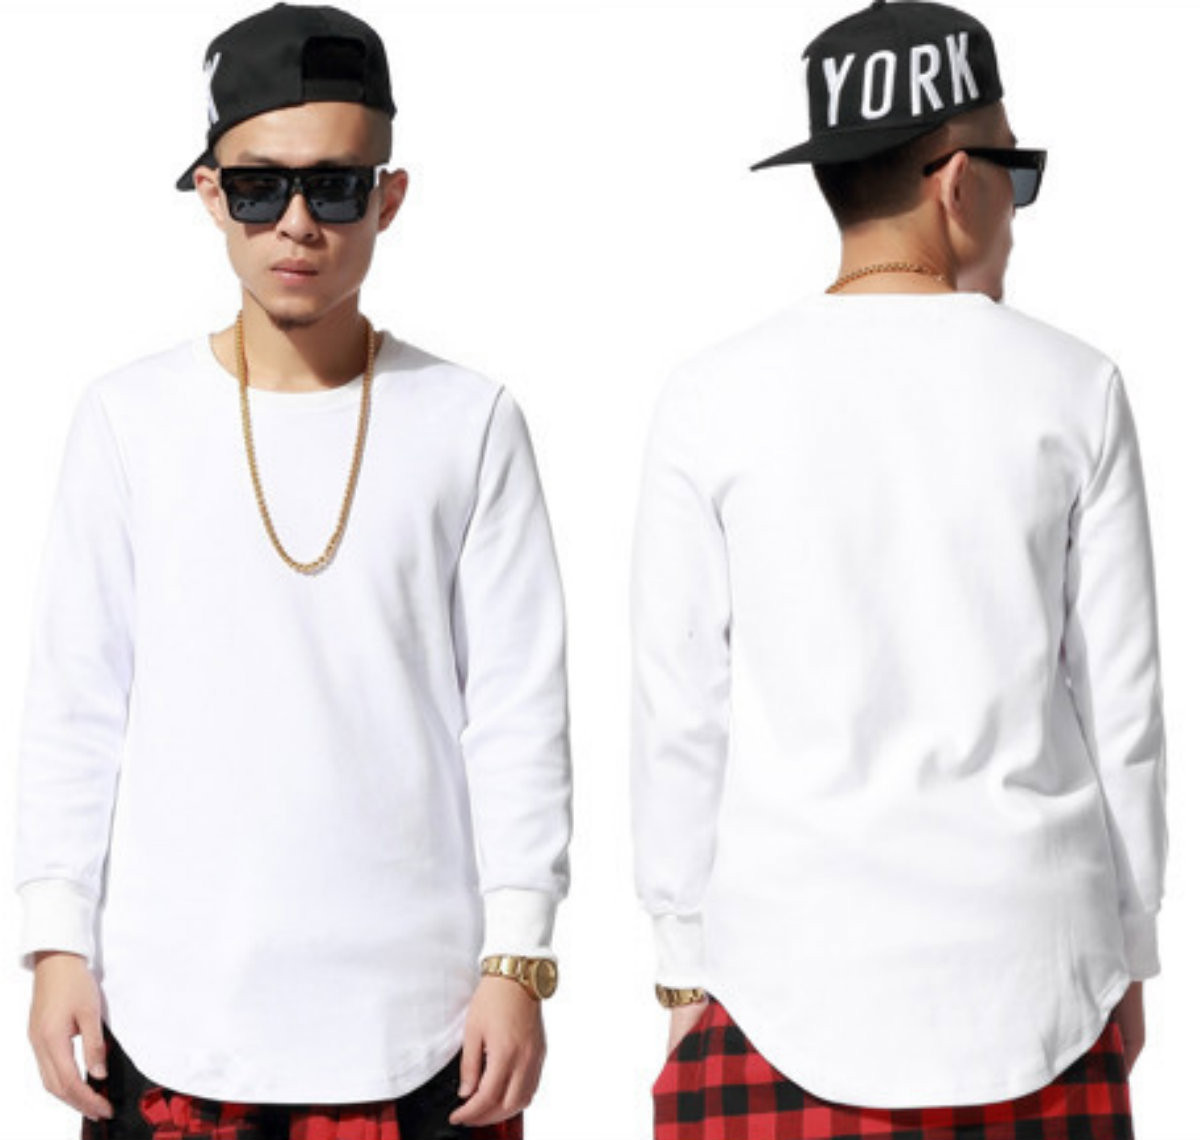 e659ea8be27d Hip Hop Celebrity Extended Long Sleeves T-Shirts - White. See 4 more  pictures. Image 1